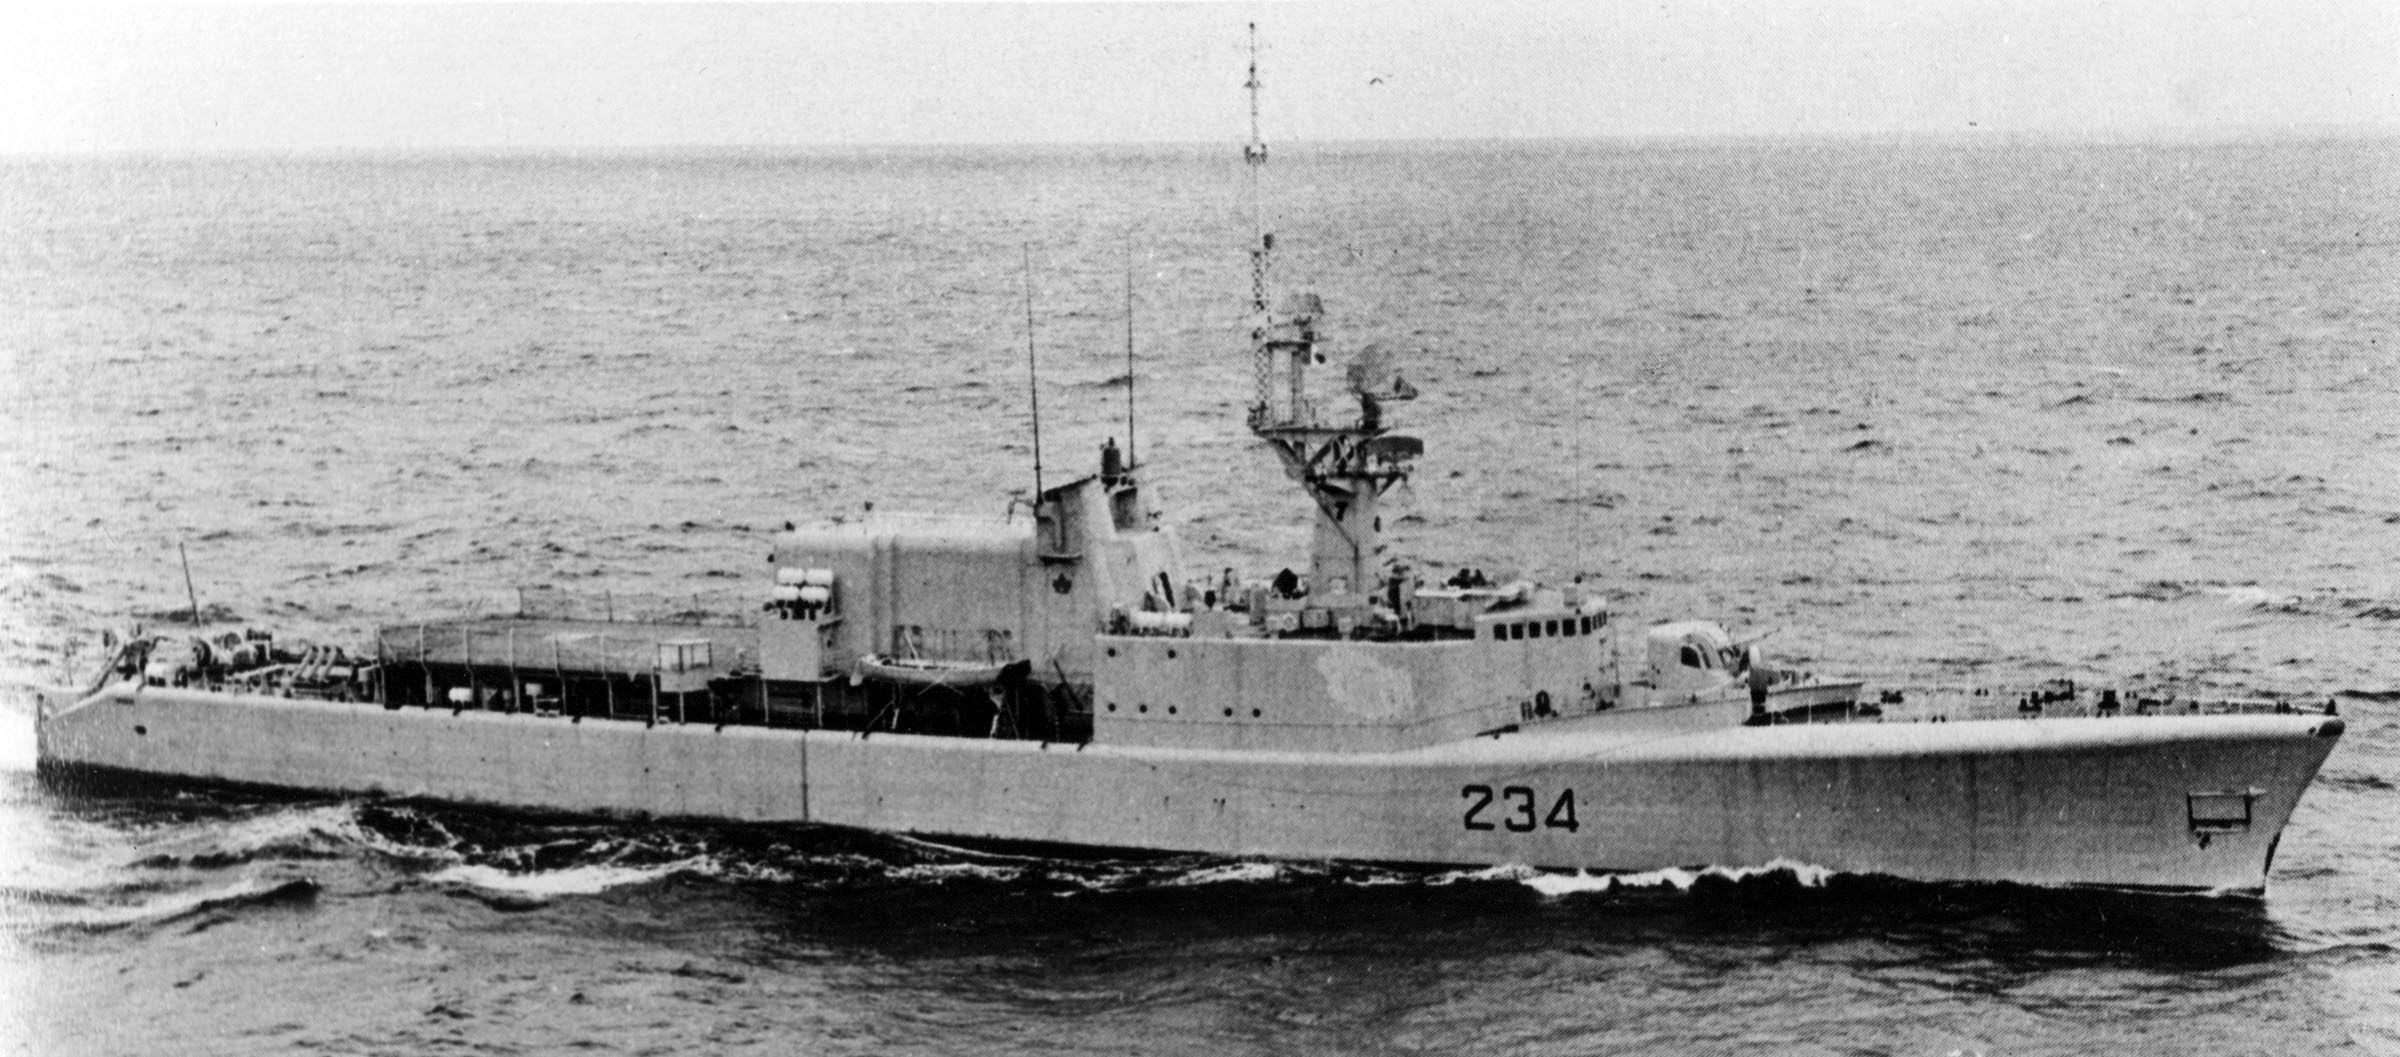 HMCS ASSINIBOINE (2nd)